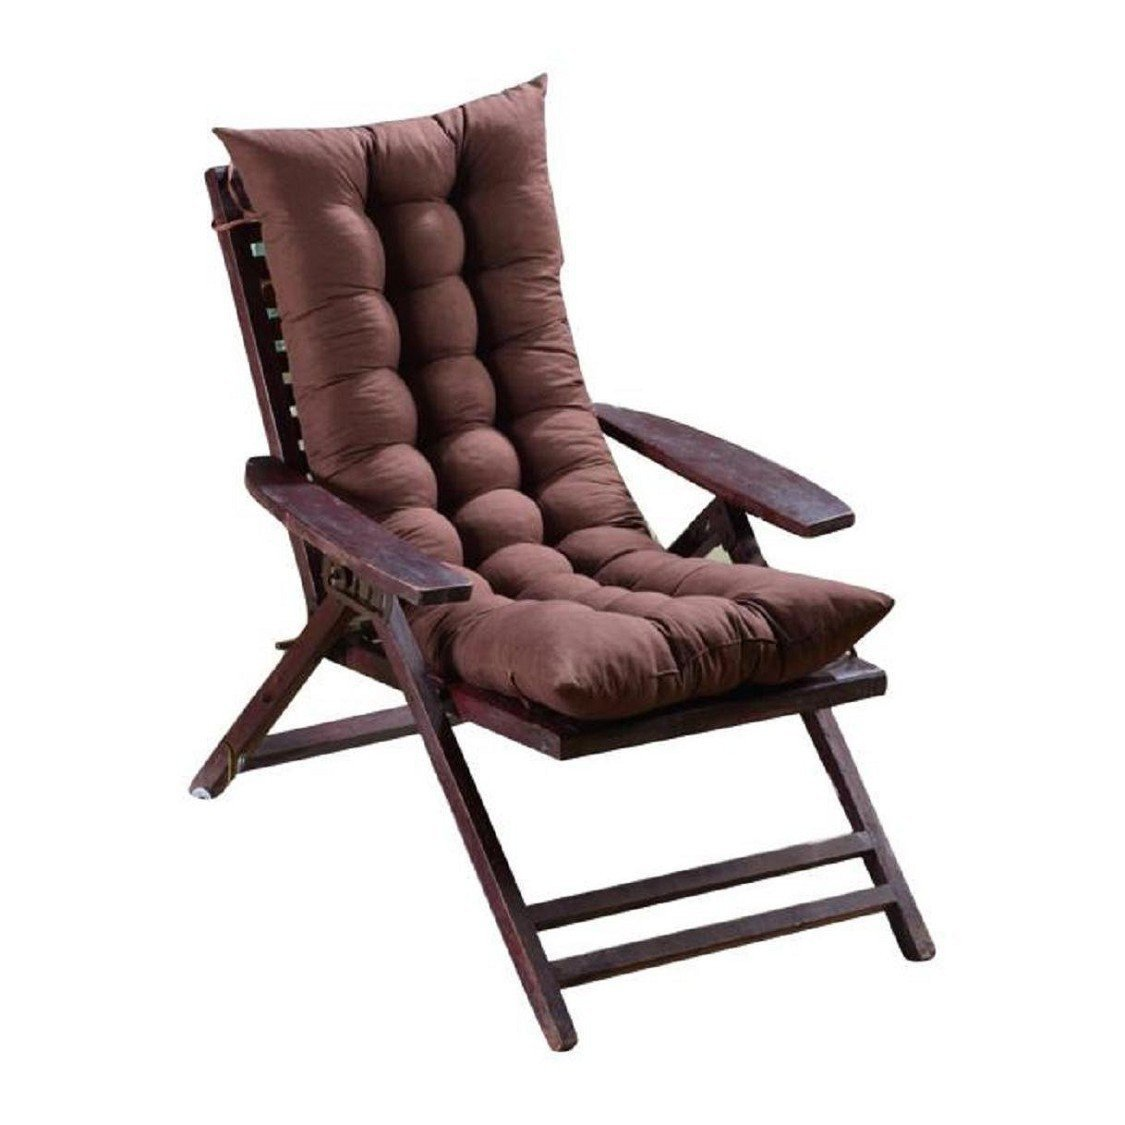 Most Comfortable Living Room Chair Most fortable Living Room Chair Home Furniture Design